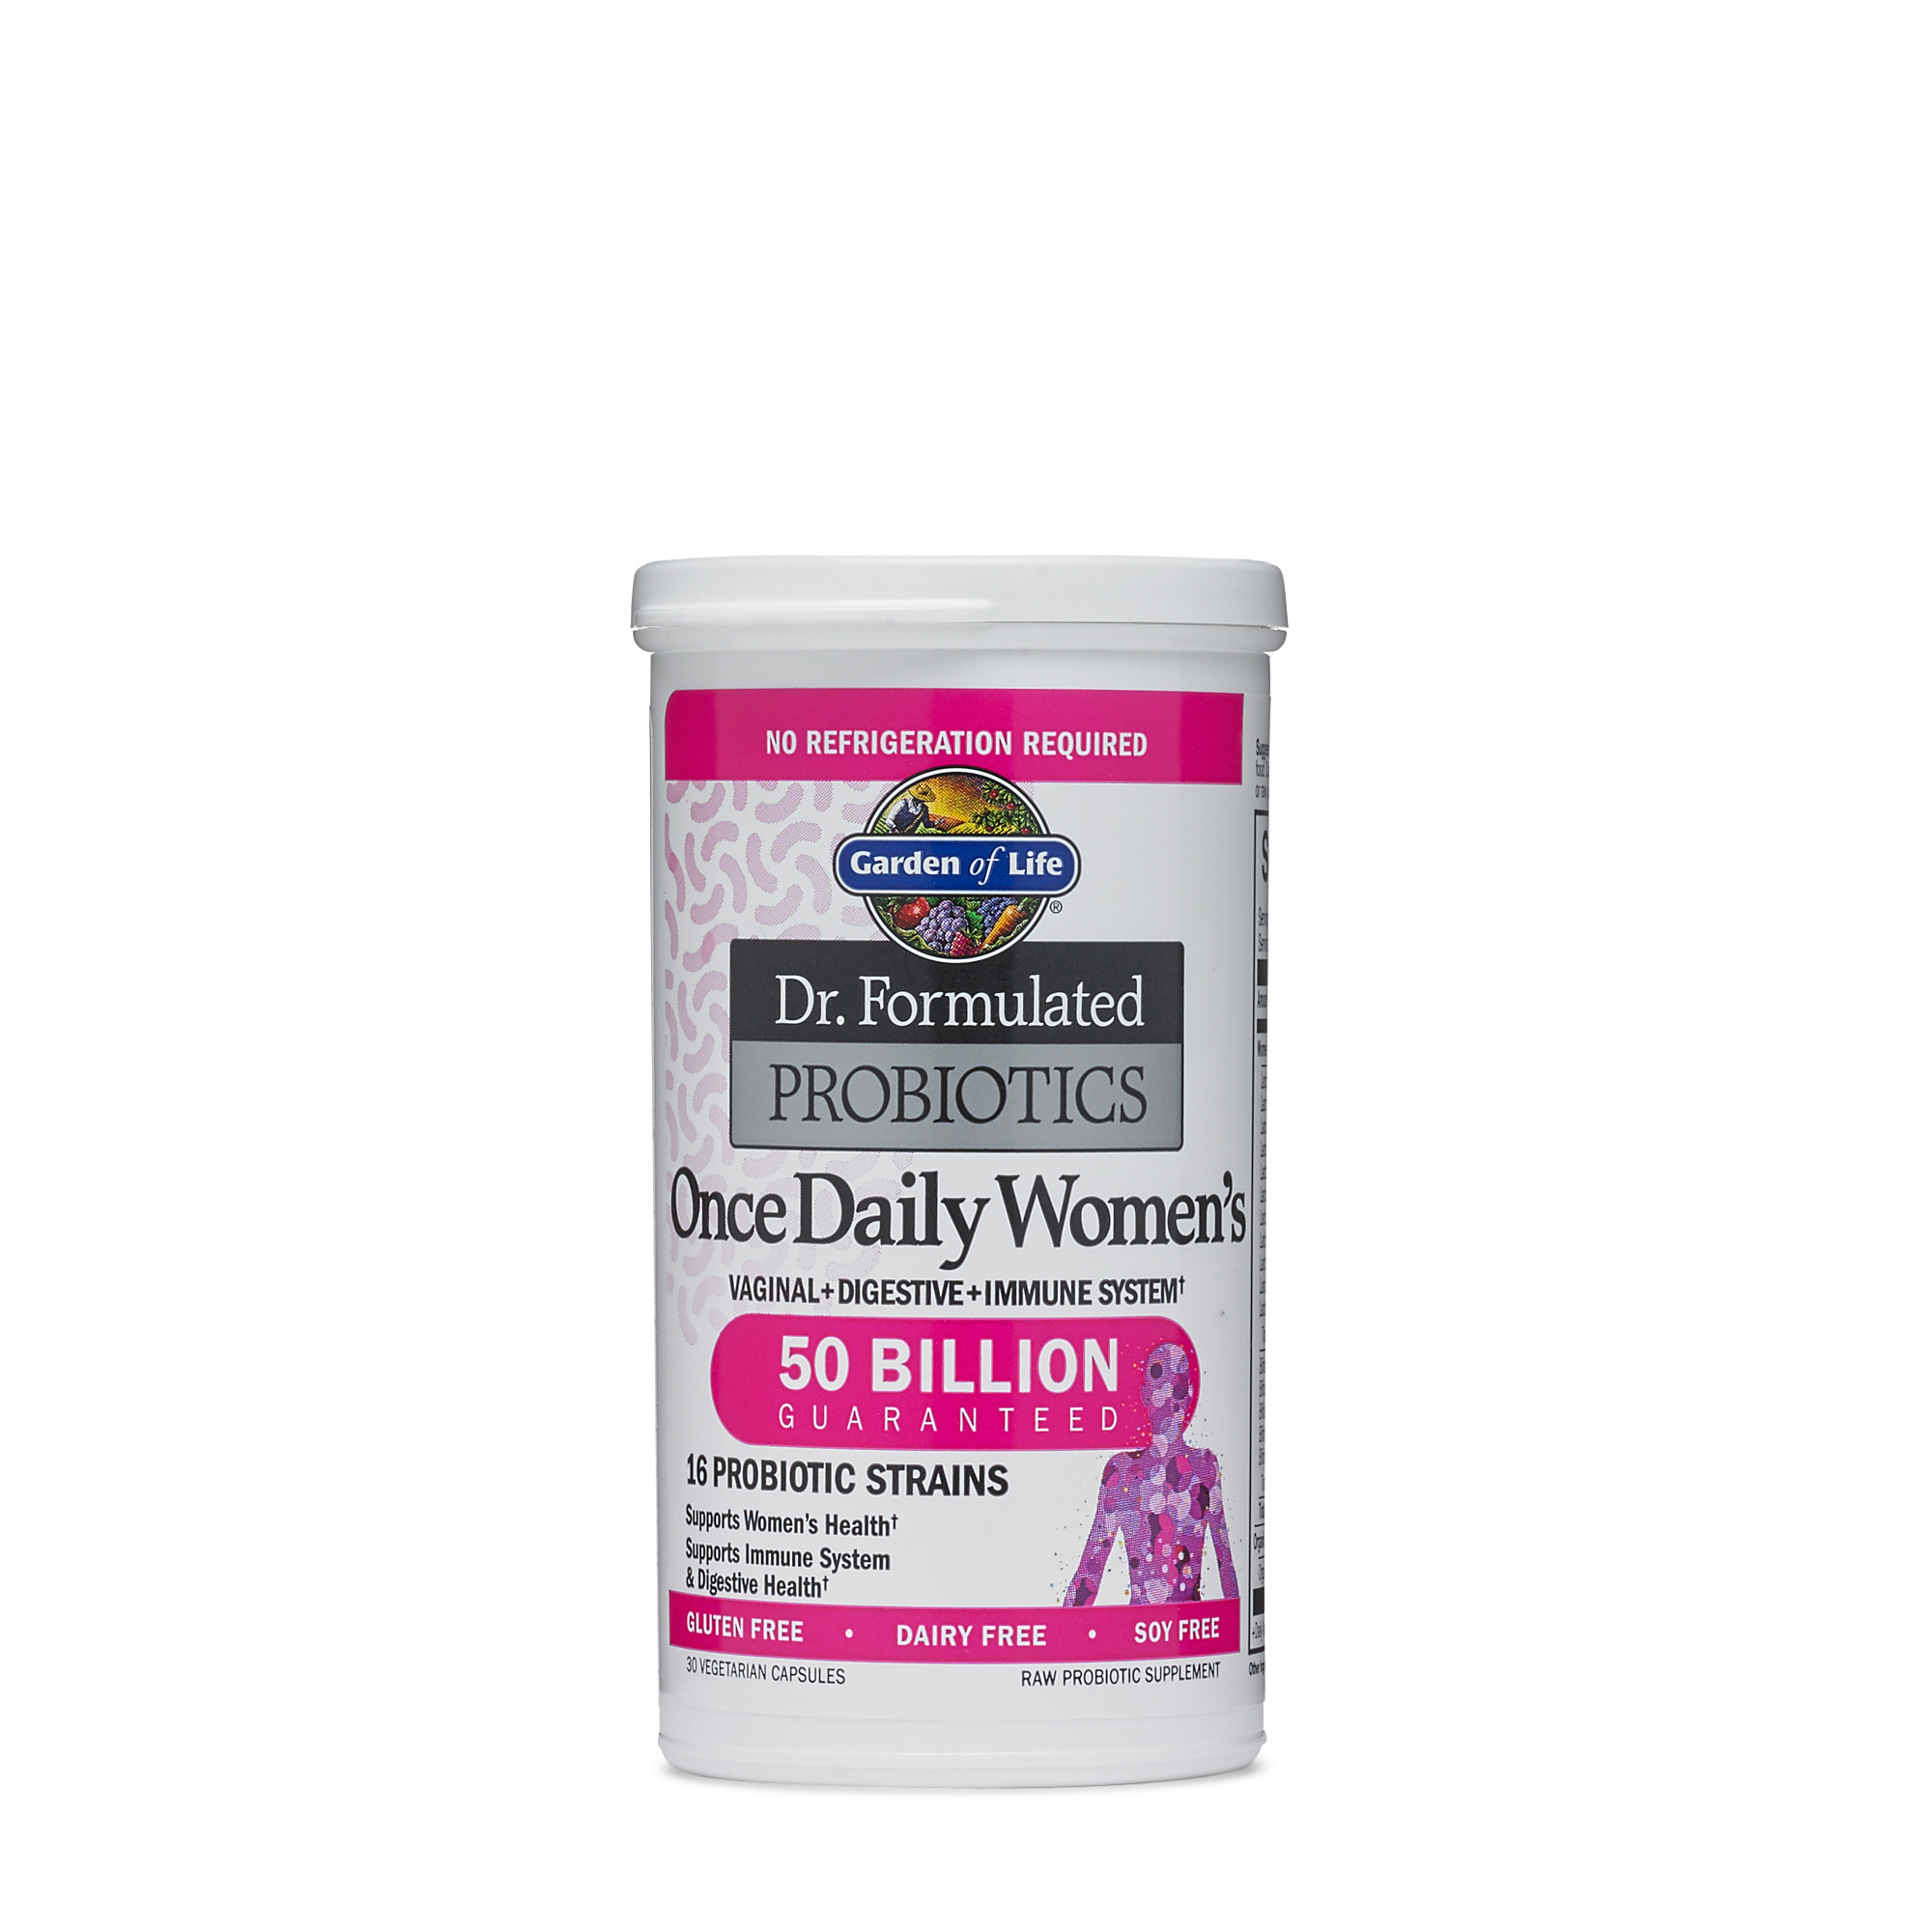 Dr Formulated Probiotics Once Daily Womens 50 BILLION GUARENTEED